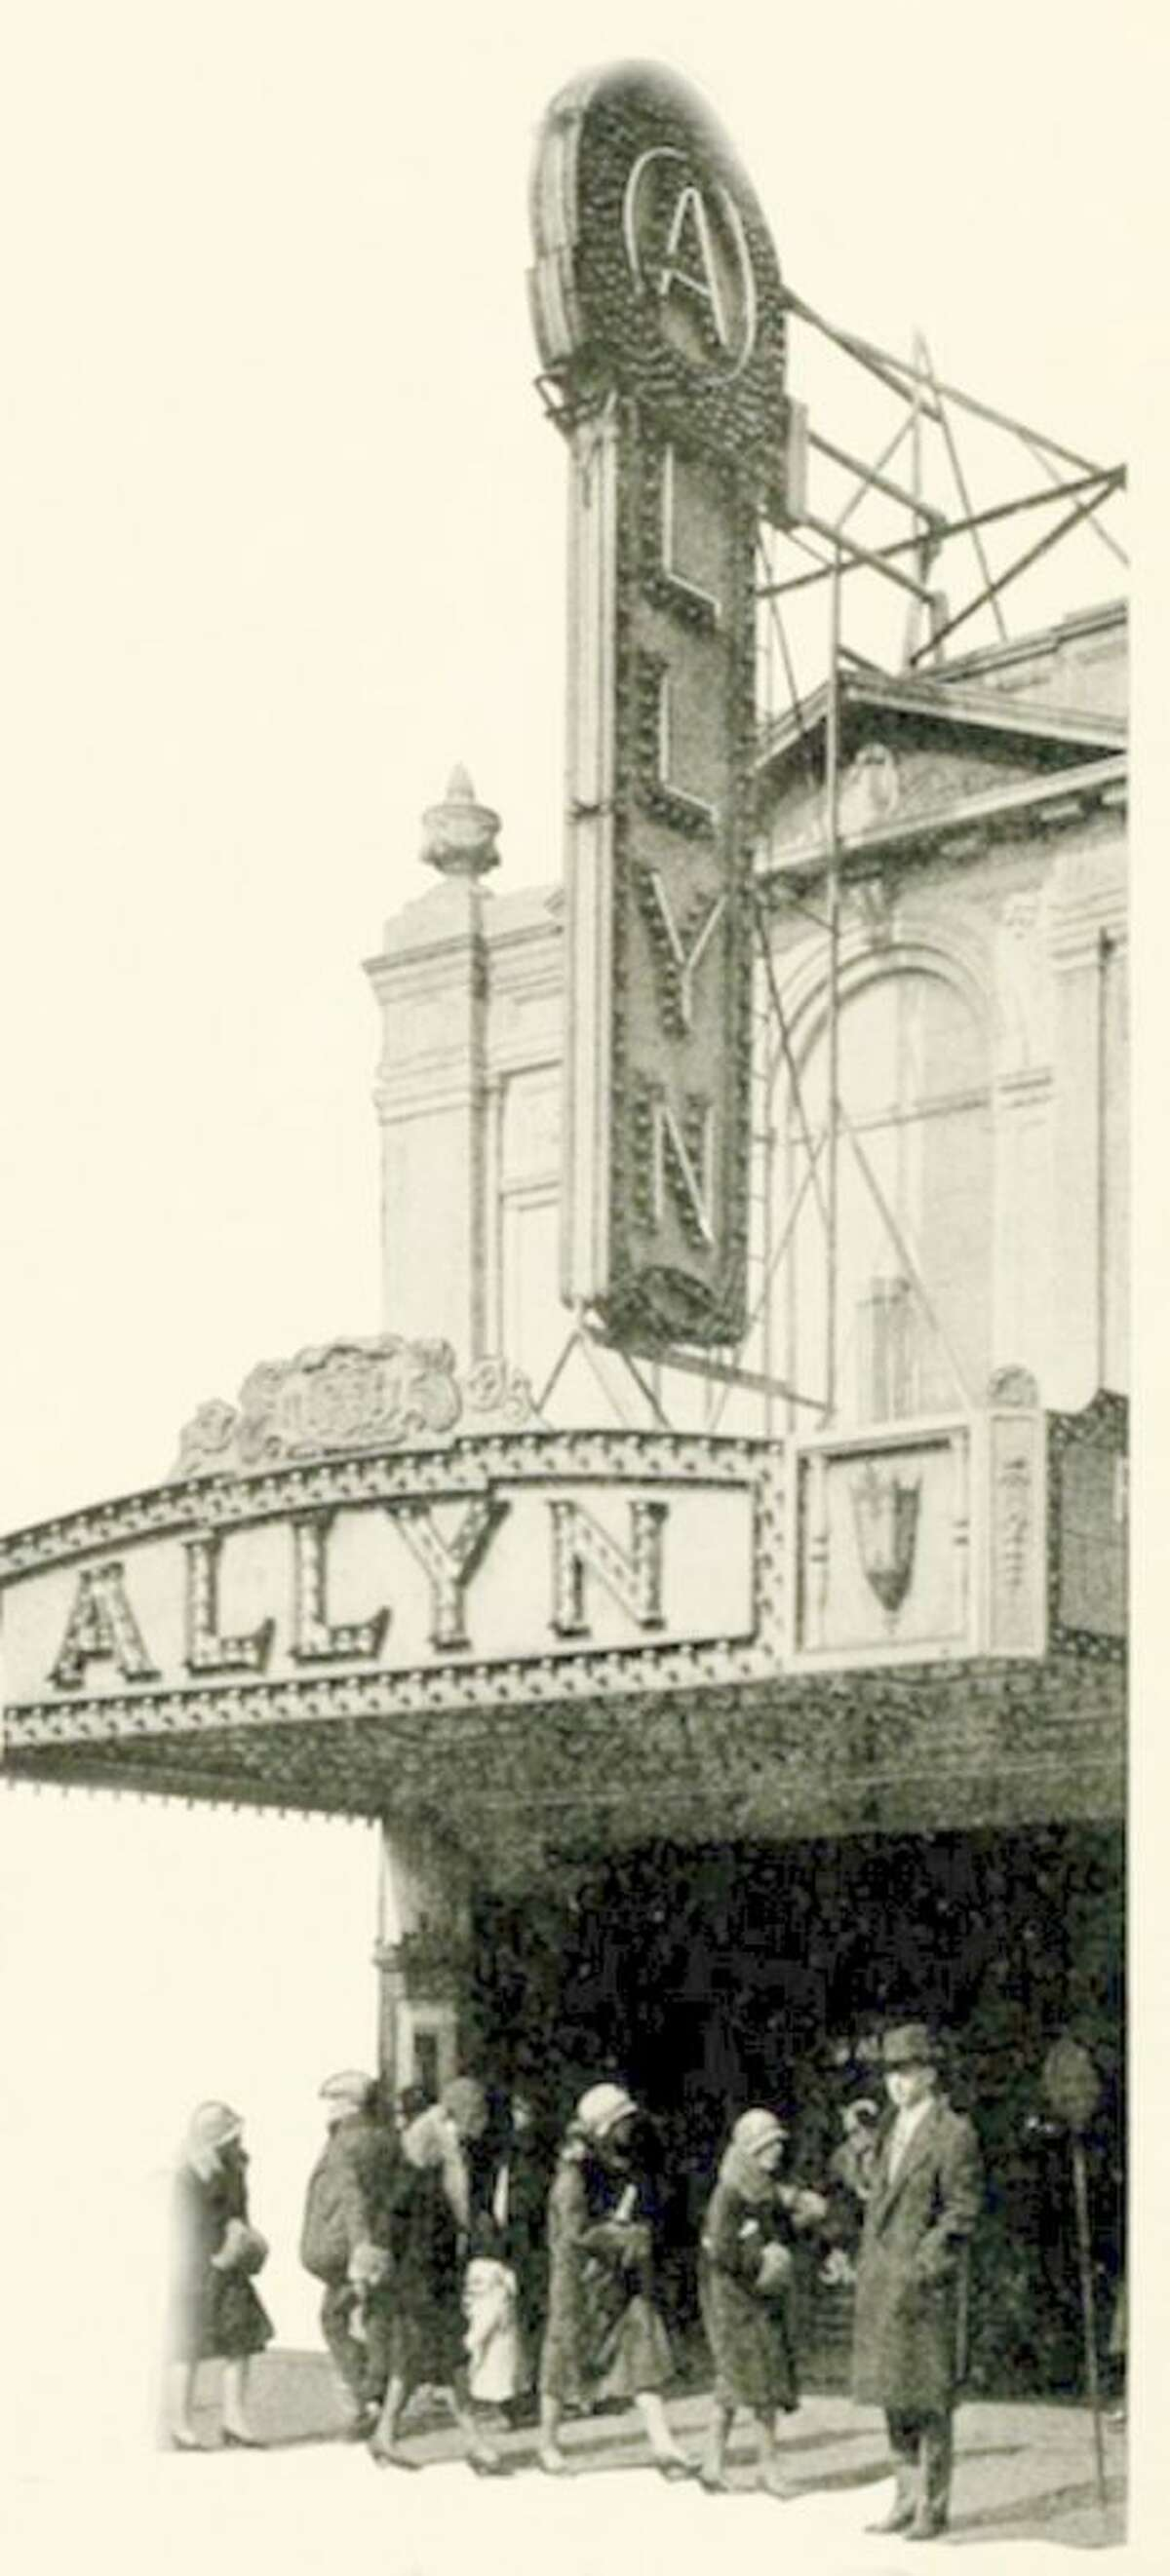 The Allyn Theater, the orginal home for the organ, was a beloved movie house. Photo credit-CVTOS-1